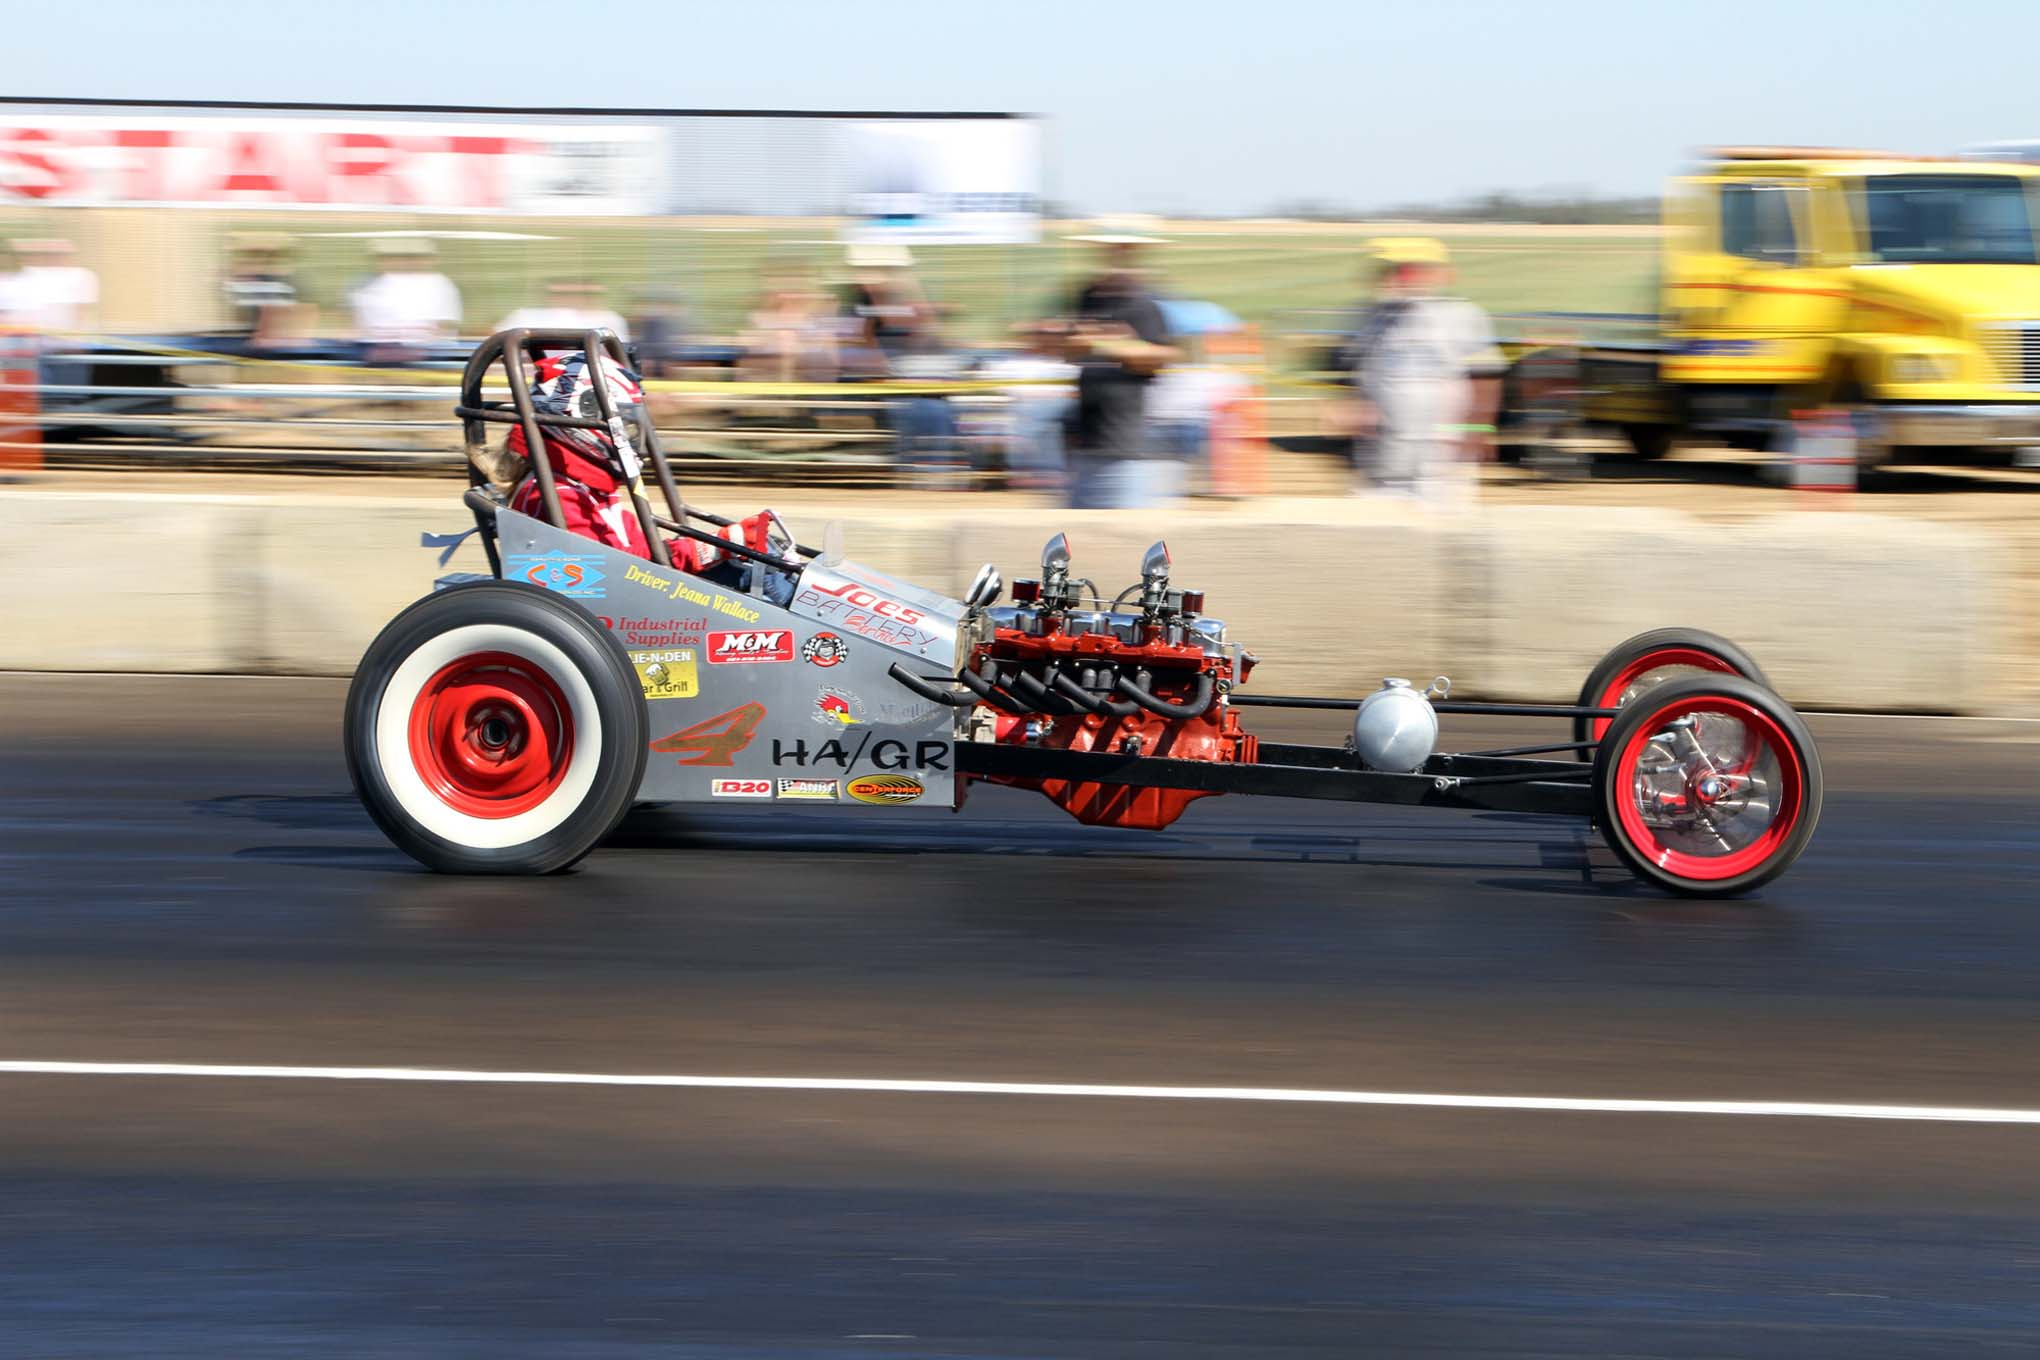 Jeana Haskins was wed just one week prior to the races at Eagle Field. She held off her honeymoon with her husband to go racing with her HAMB dragster instead. Her dragster is powered by a Ford six-cylinder engine out of a Comet and a three-speed manual transmission. The HAMB dragsters represent the early days of drag racing, when the cars were simple and made with spare parts.